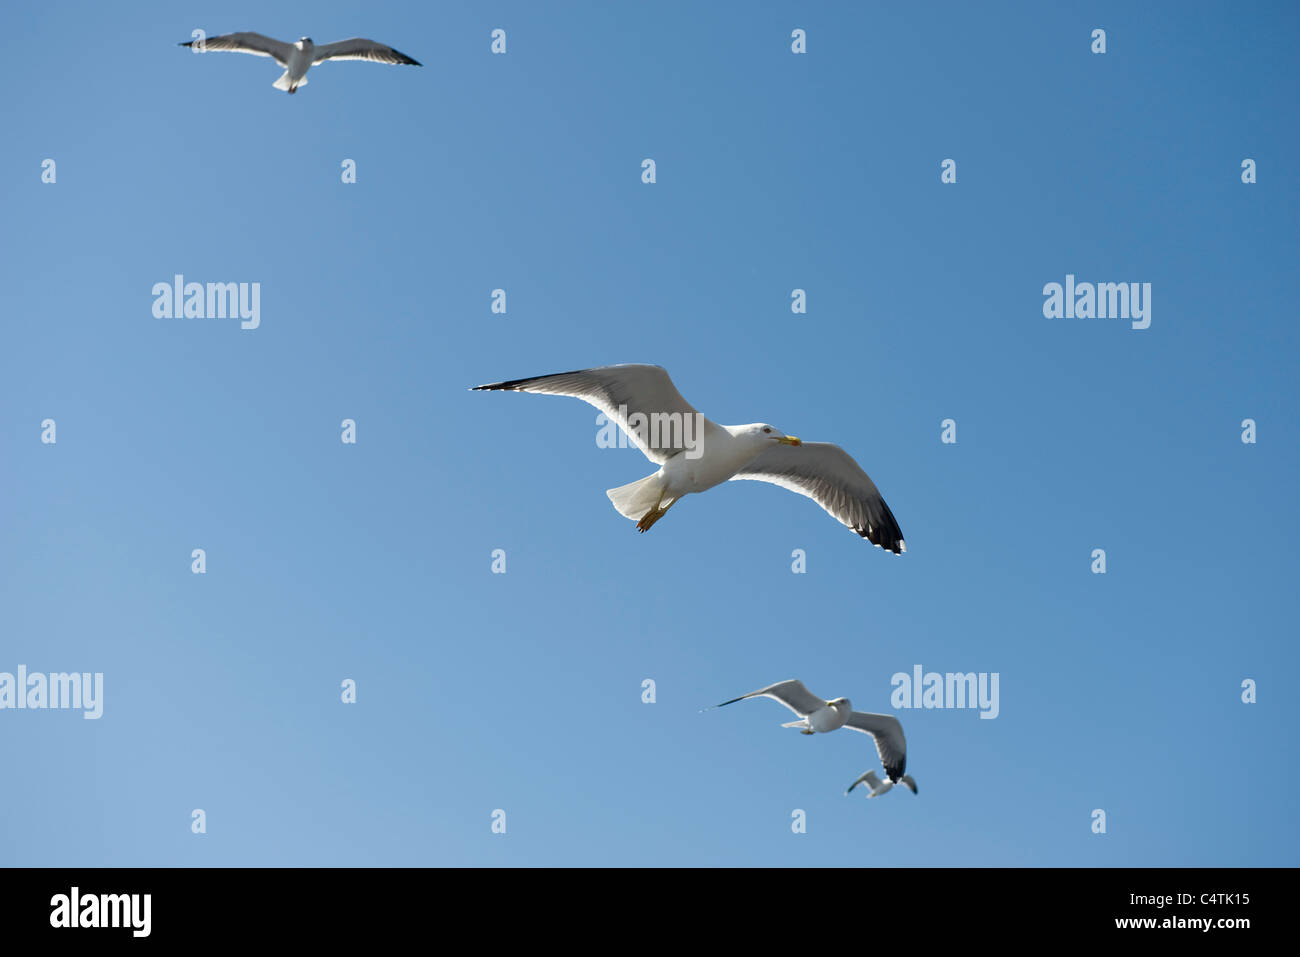 Gulls in flight - Stock Image